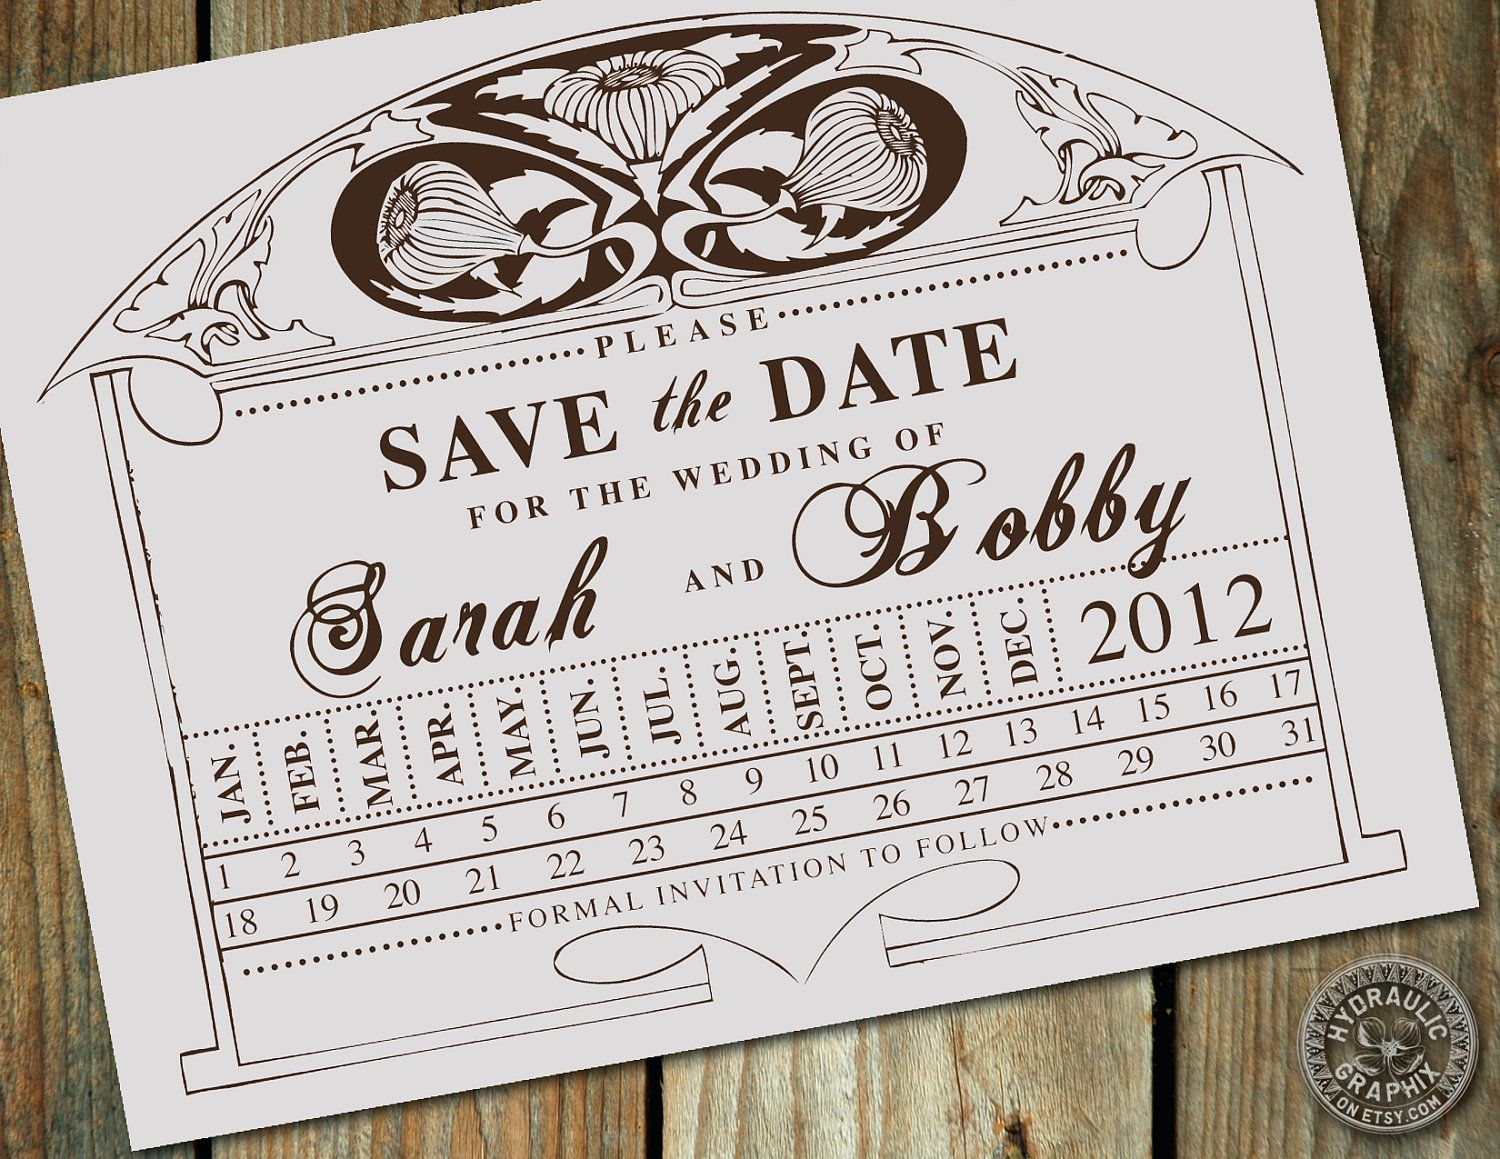 Vintage Train Station Ticket Stub Punch Card Wedding Save the Date ...